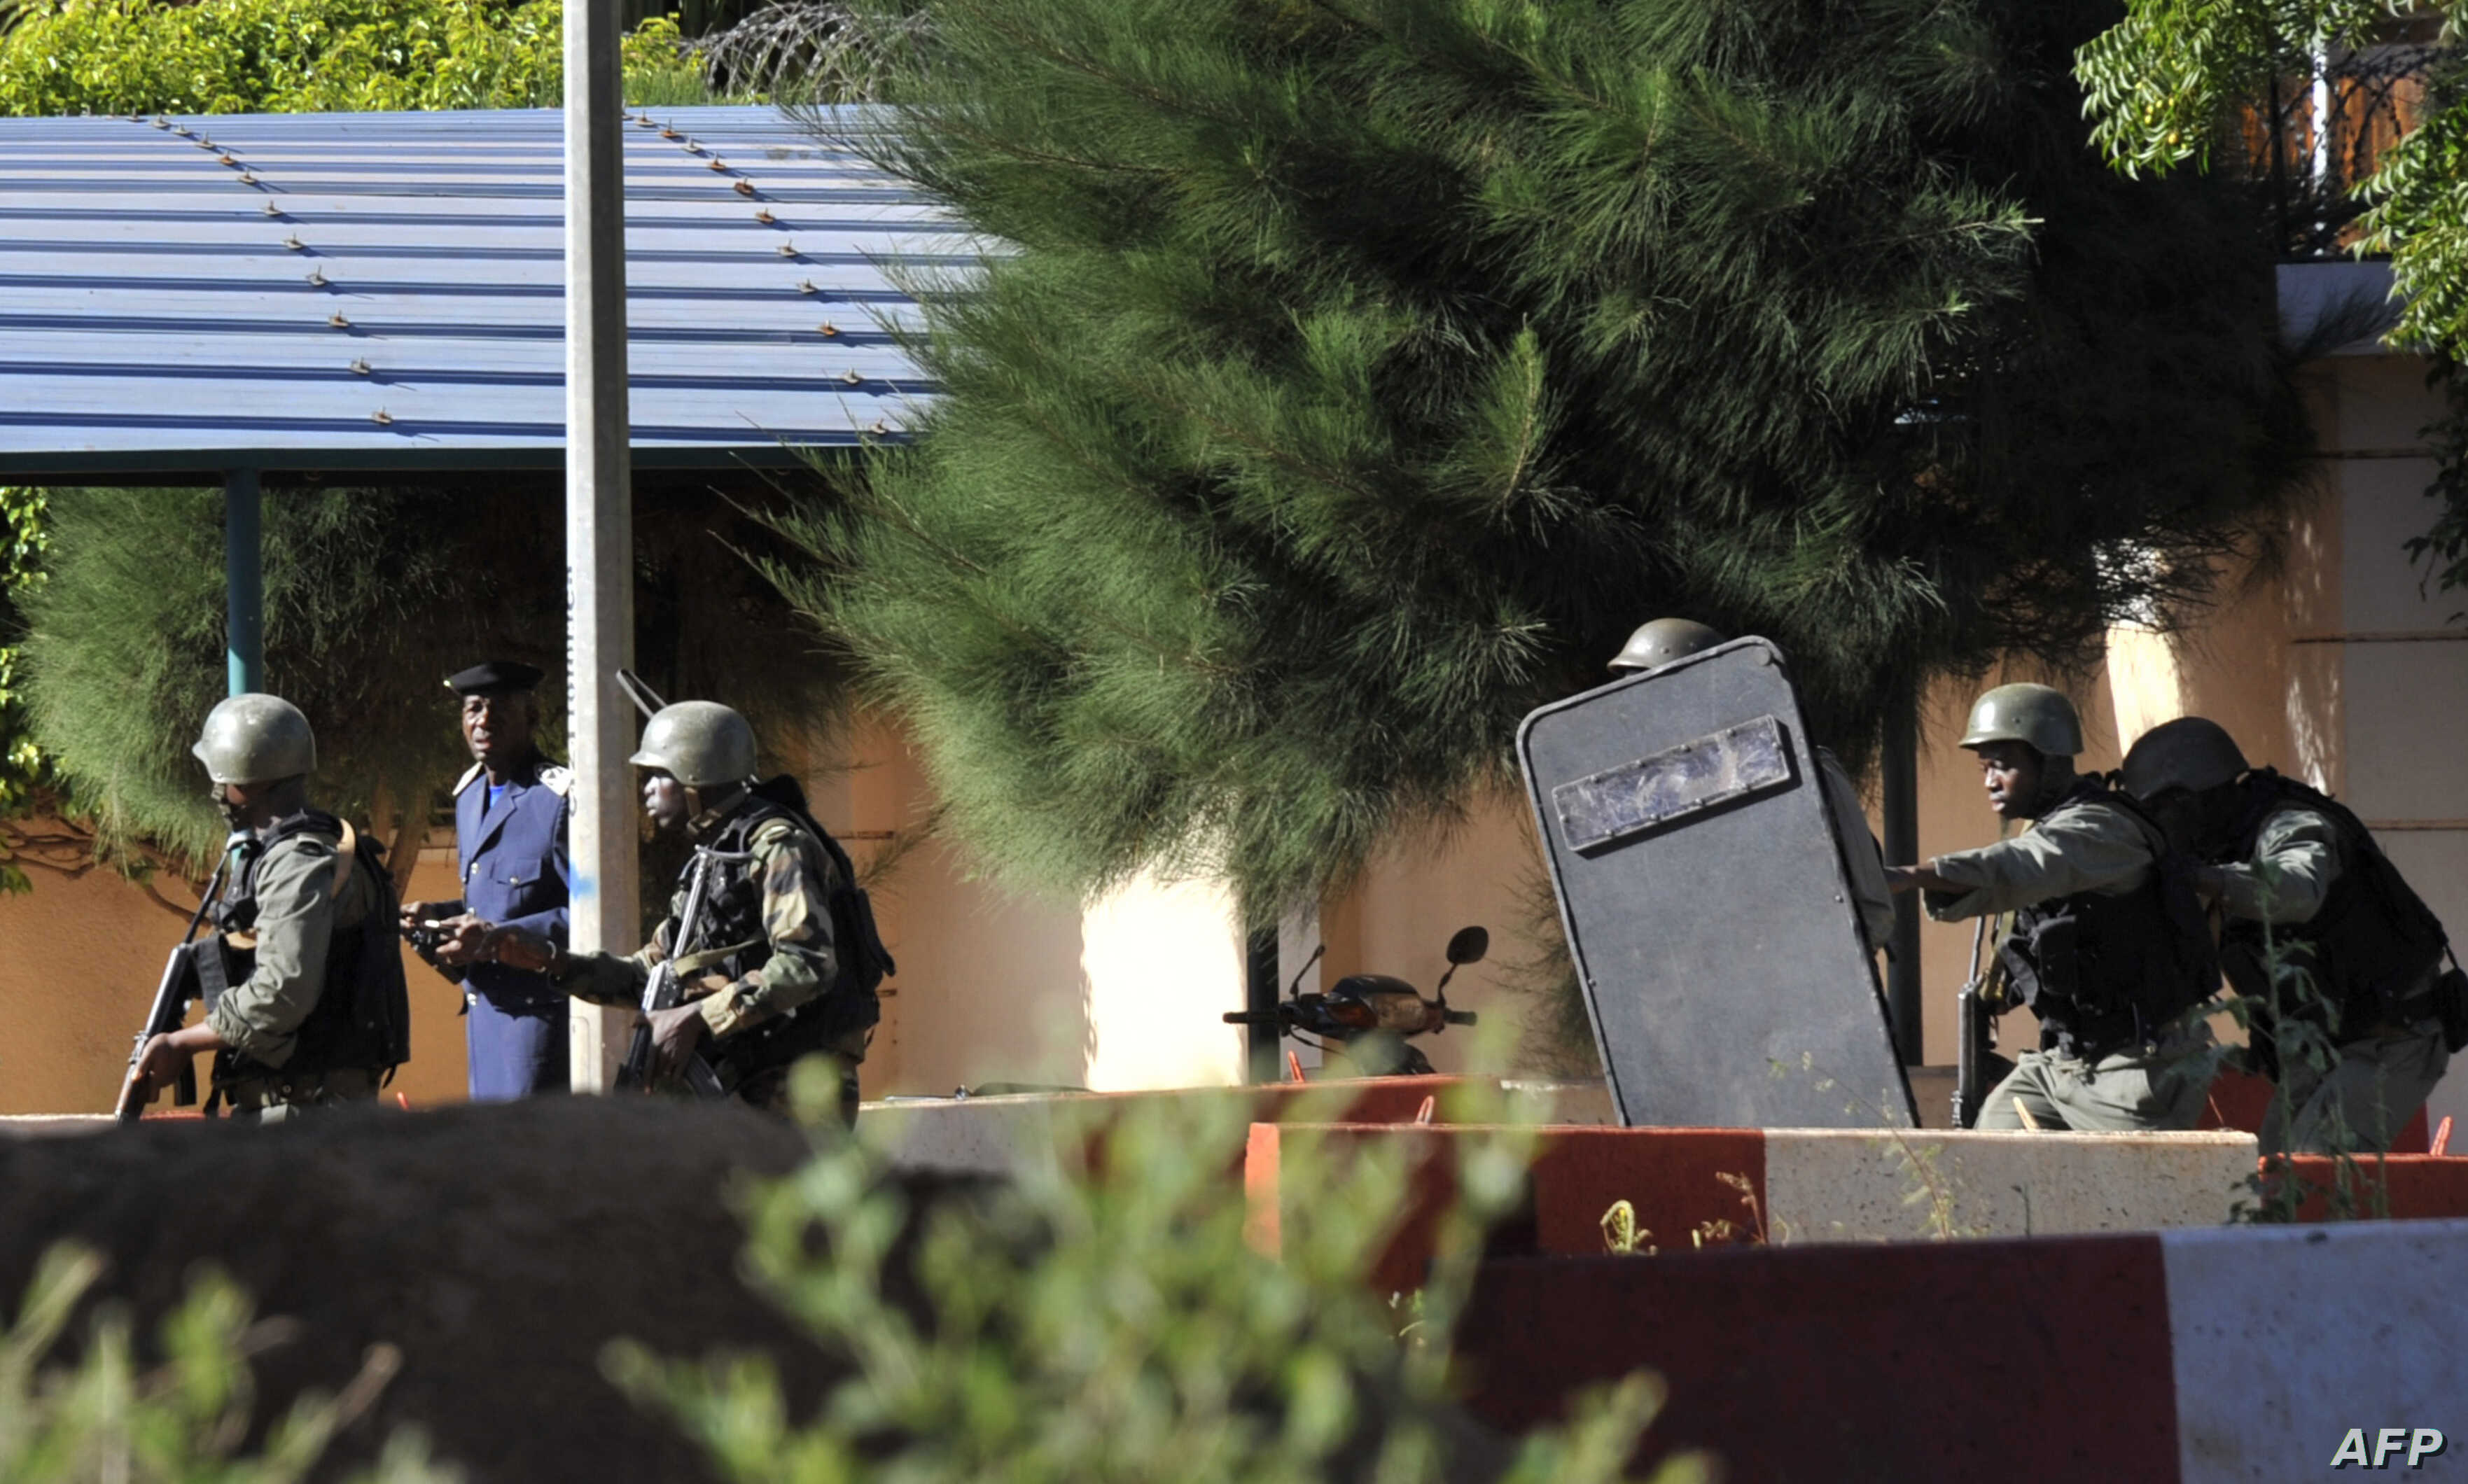 Malian troops take position outside the Radisson Blu hotel in Bamako on November 20, 2015. Gunmen attacked the luxury hotel in Mali's capital Bamako, seizing 170 guests and staff in an ongoing hostage situation that has left at least three people dea...